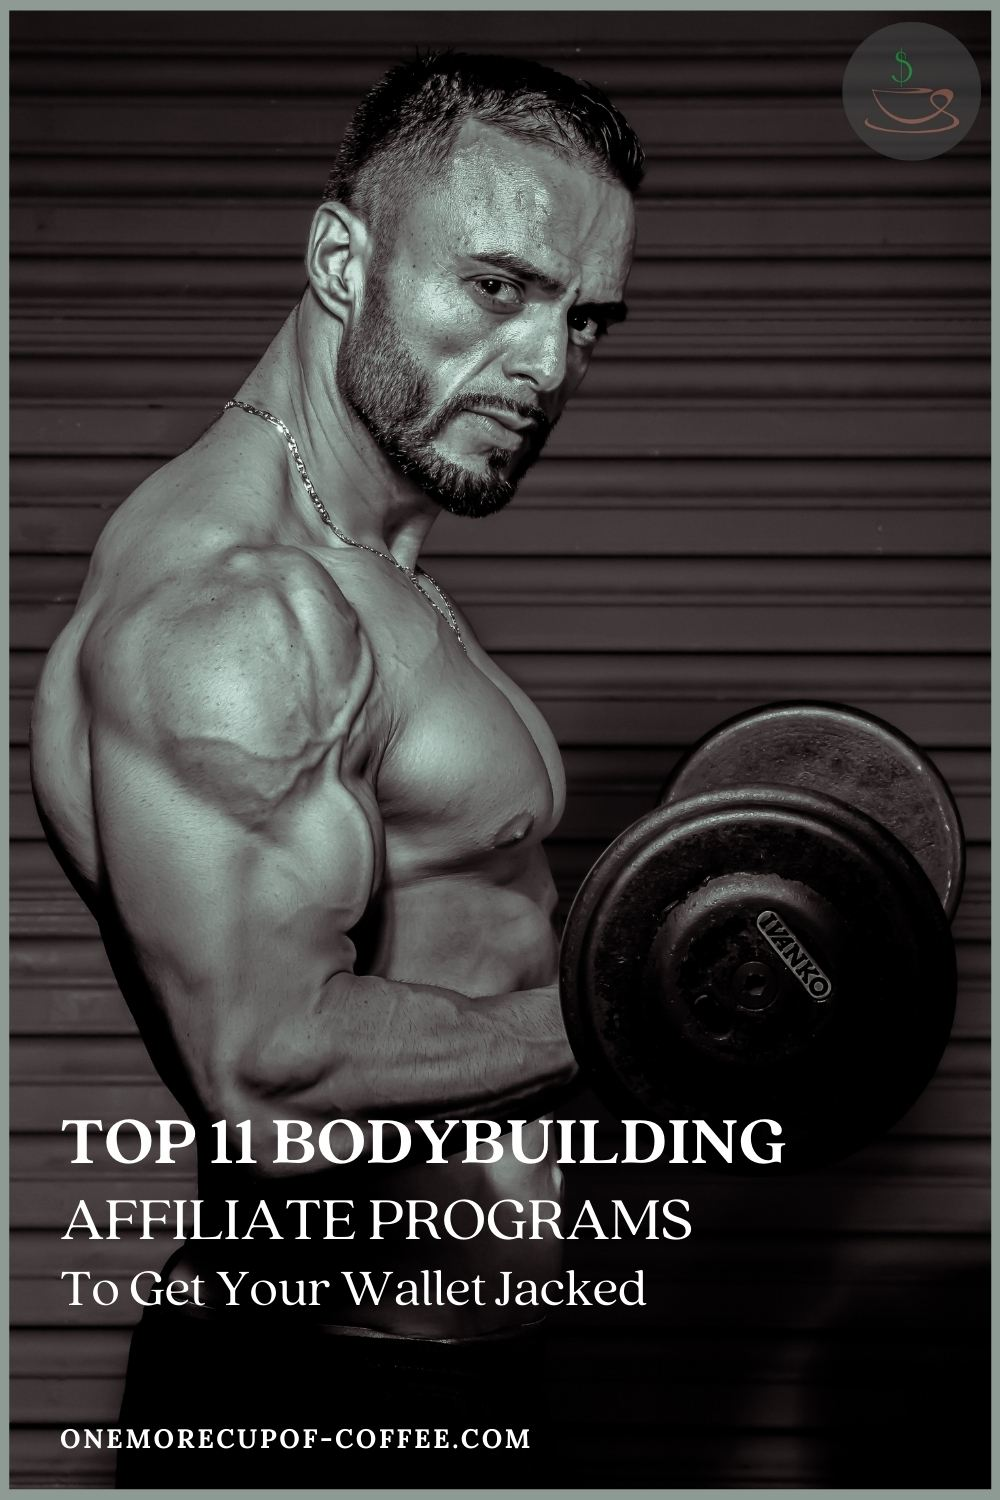 """topless bearded man, flexing his muscles while weightlifting; with text overlay """"Top 11 Bodybuilding Affiliate Programs To Get Your Wallet Jacked"""""""